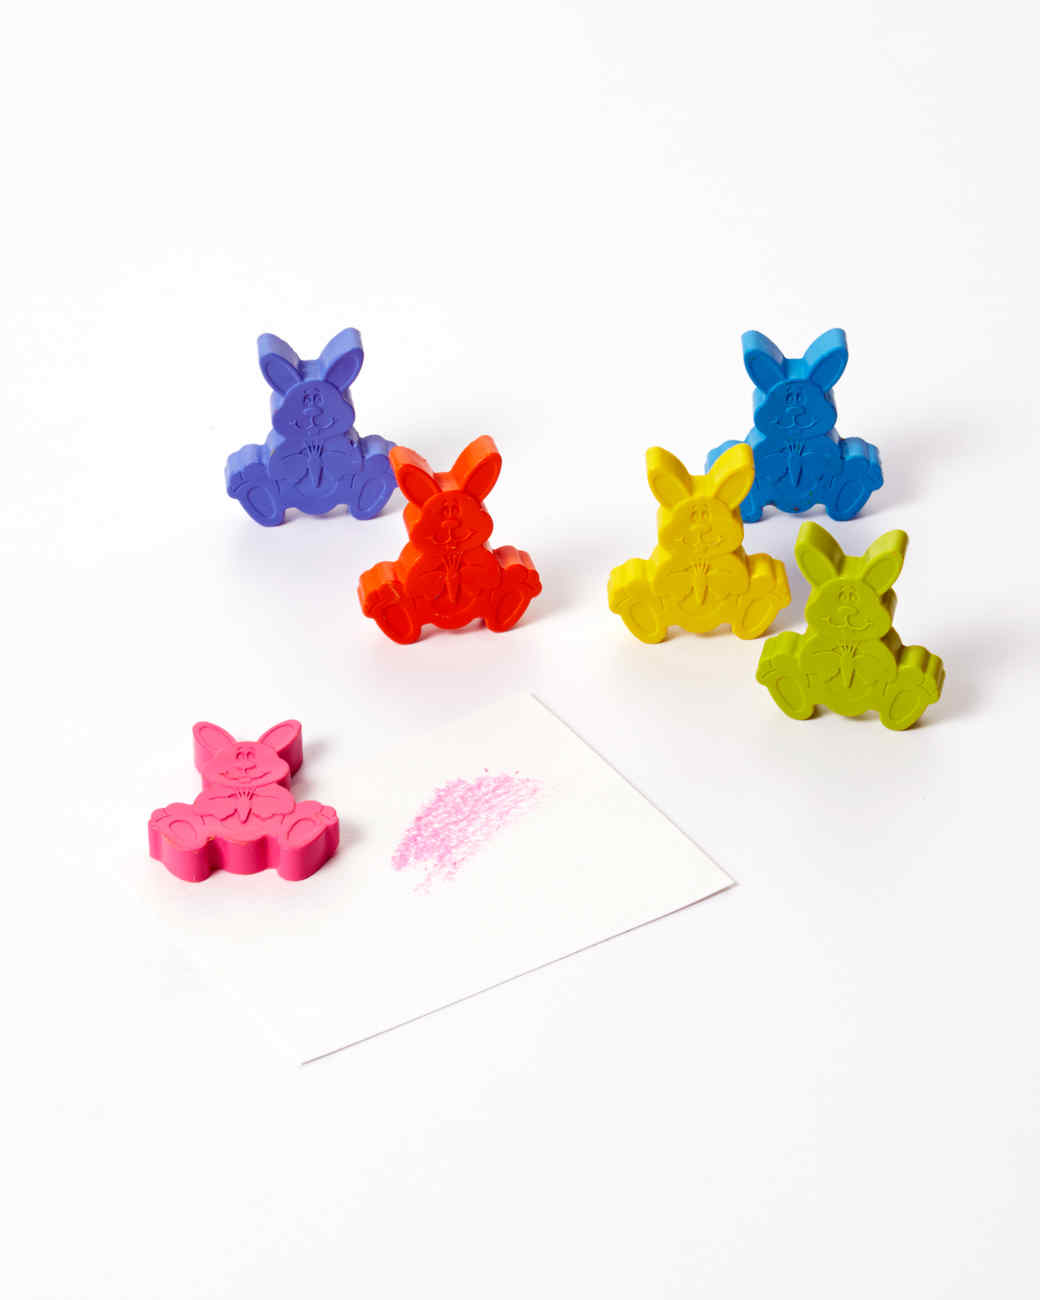 crafty-girl-bunny-crayons-2858-d112789-0116.jpg